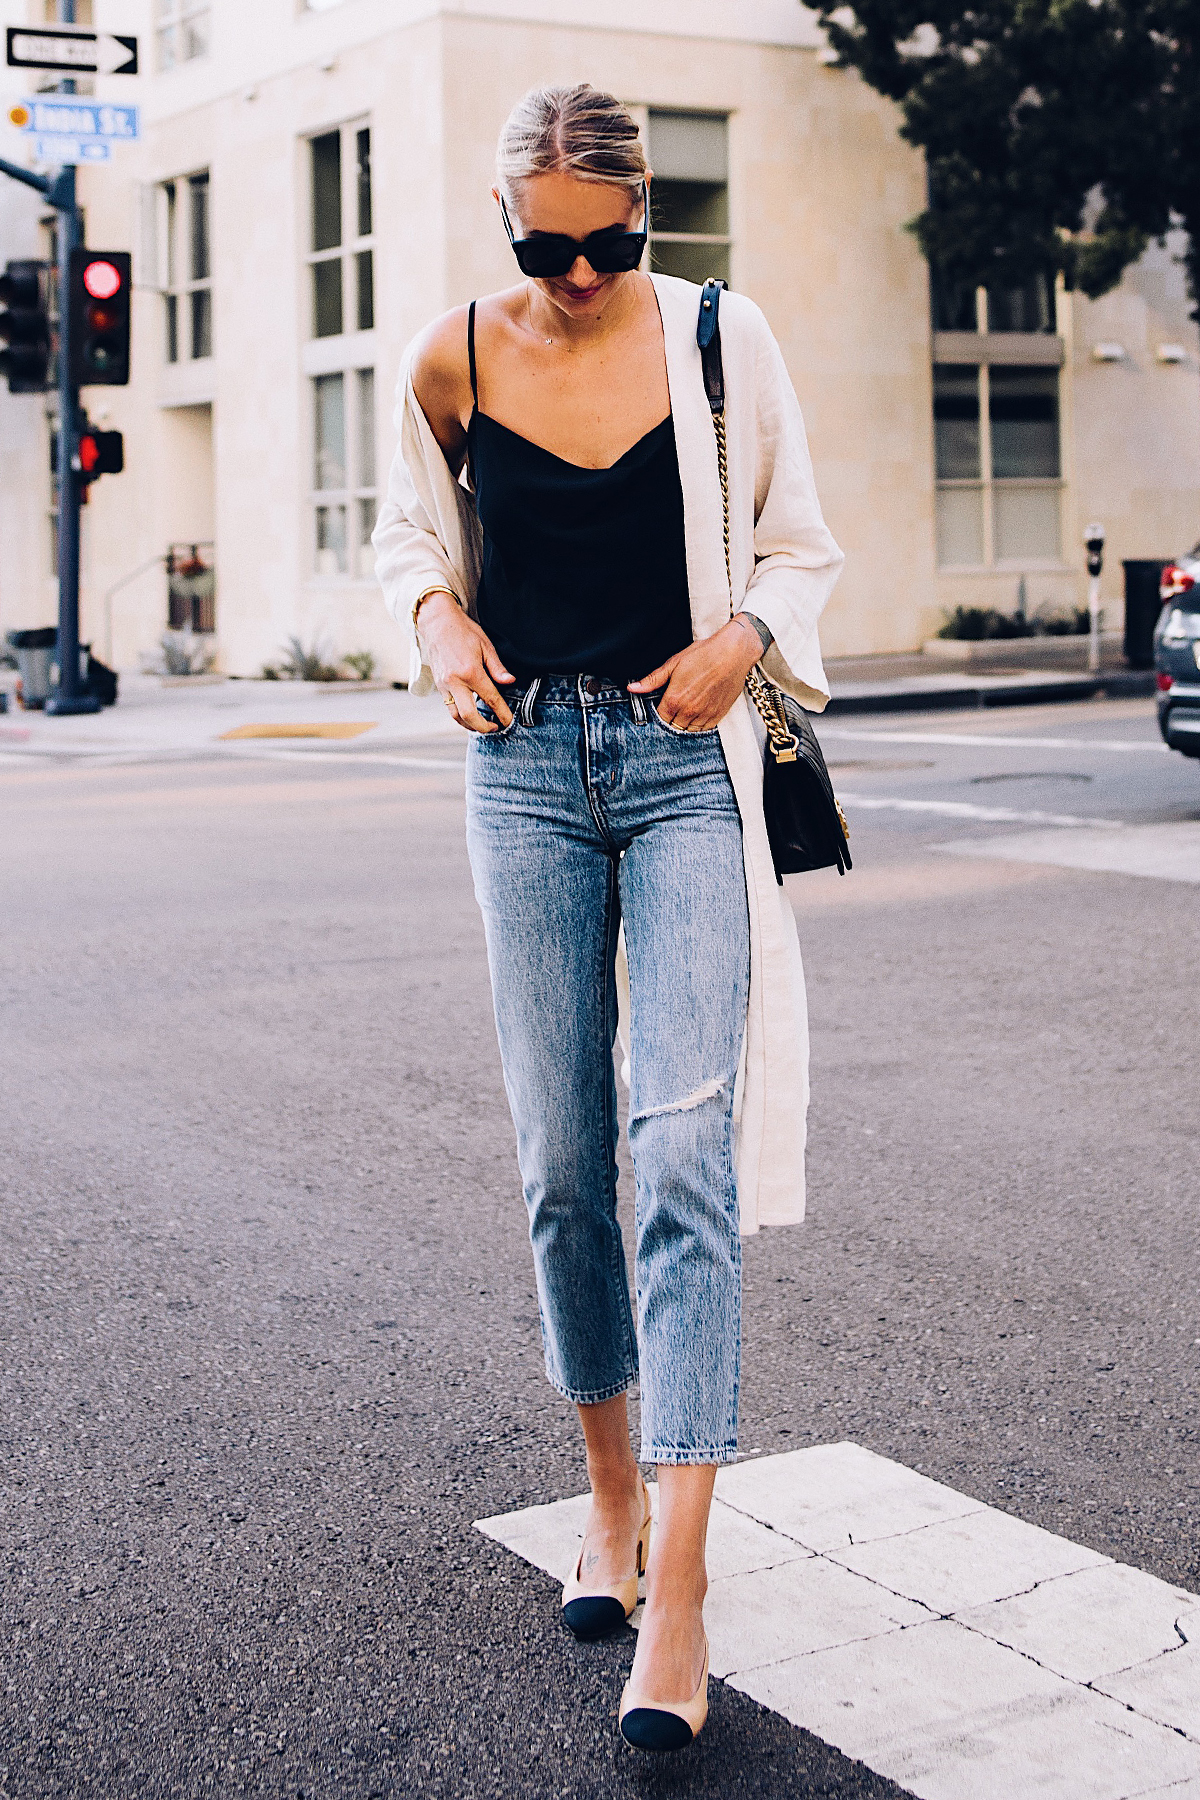 Blonde Woman Wearing Topshop Black Cami Denim Ripped Mom Jeans Beige Linen Kimono Chanel Slingback Heels Fashion Jackson San Diego Blogger Fashion Blogger Street Style